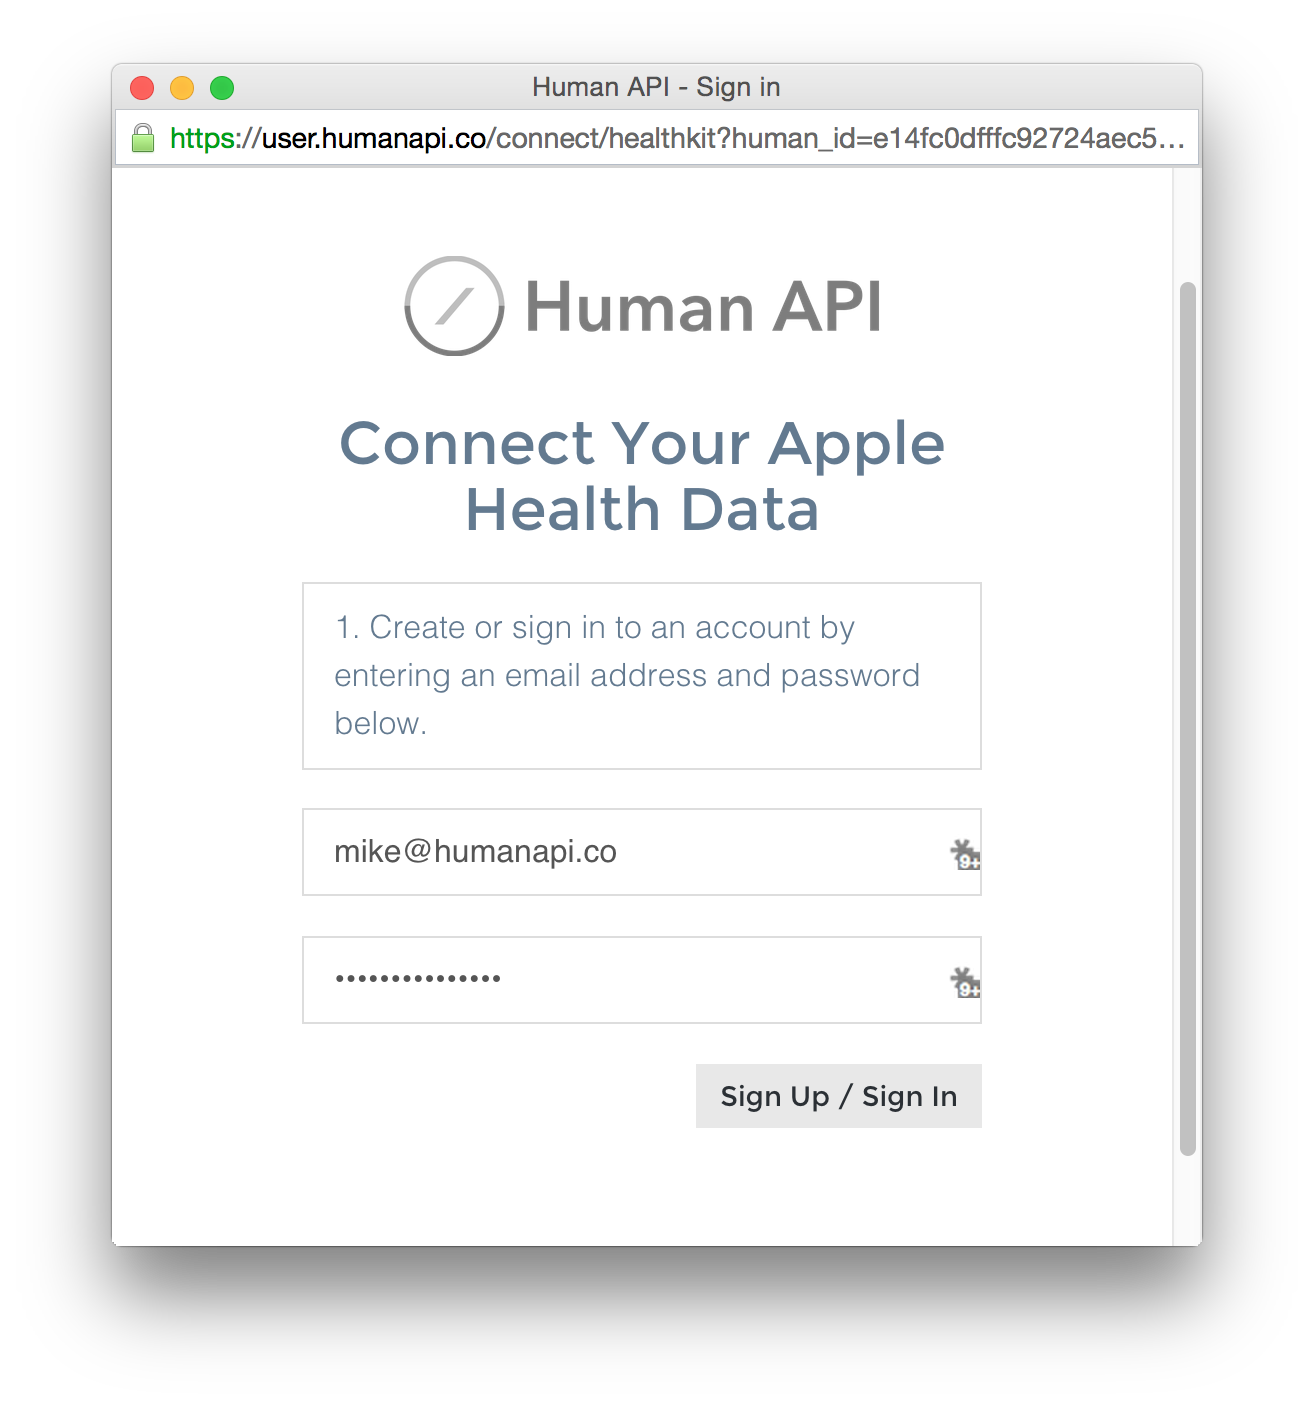 Human API Connect Sign Up Window